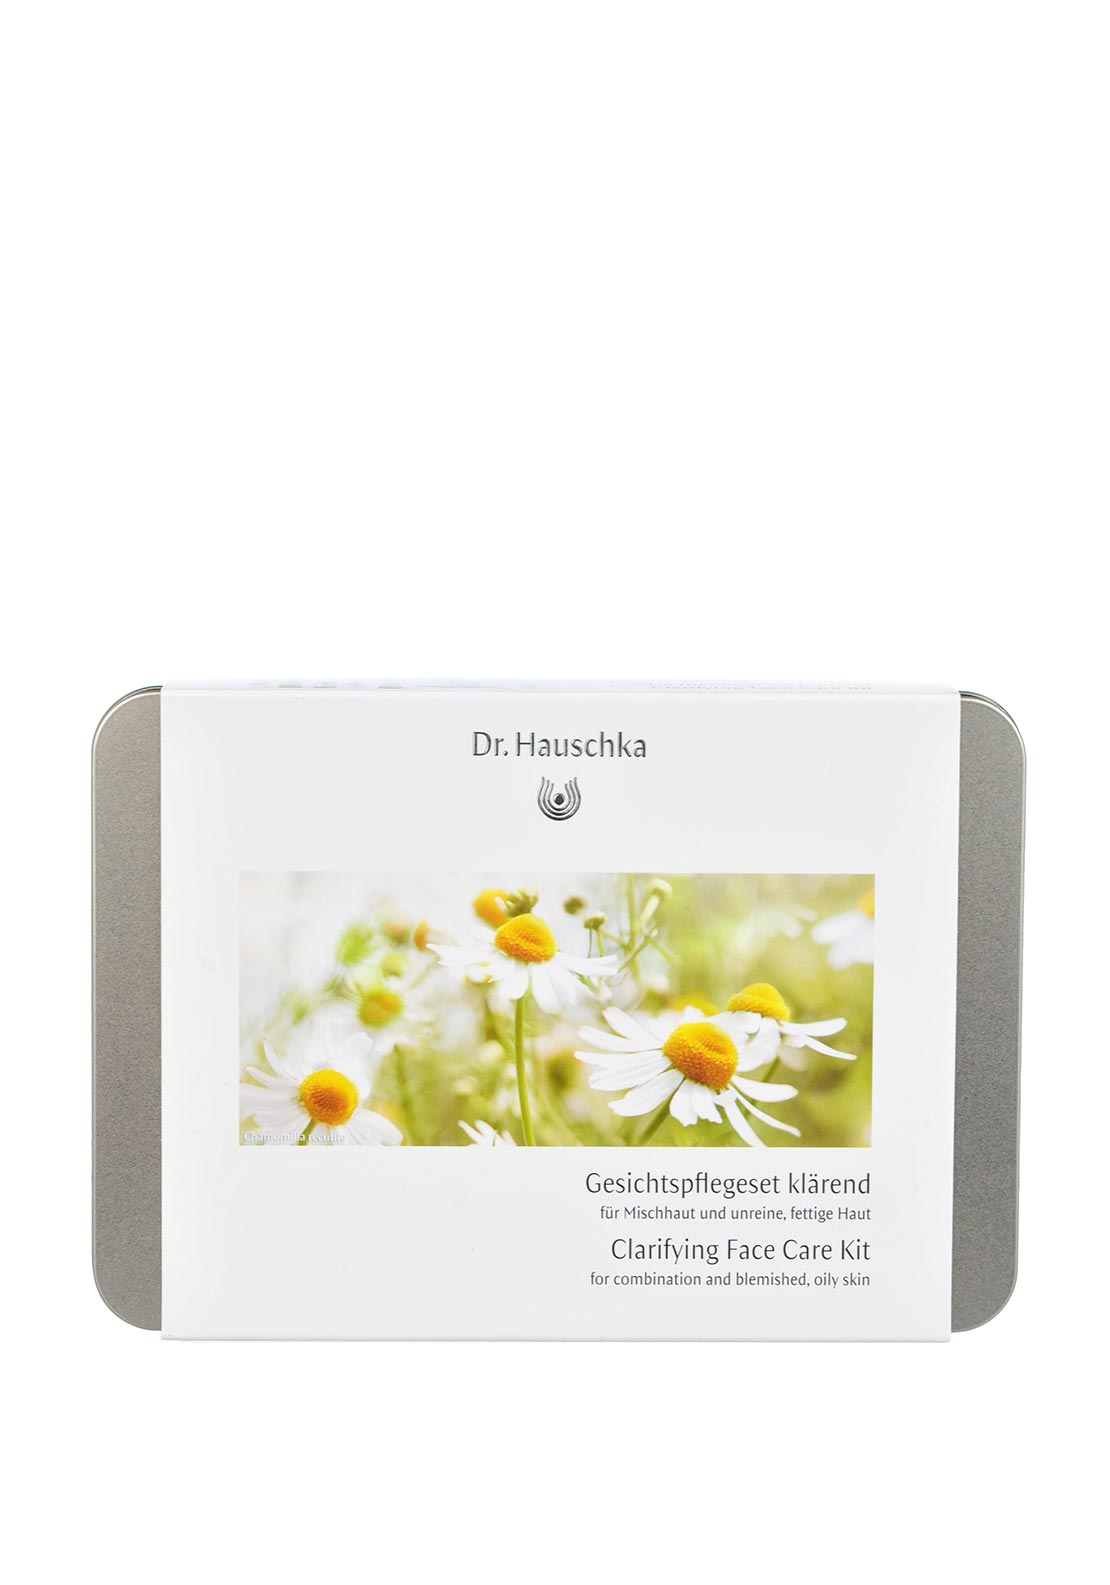 Dr. Hauschka Face Care Kit, 10ml & 5ml